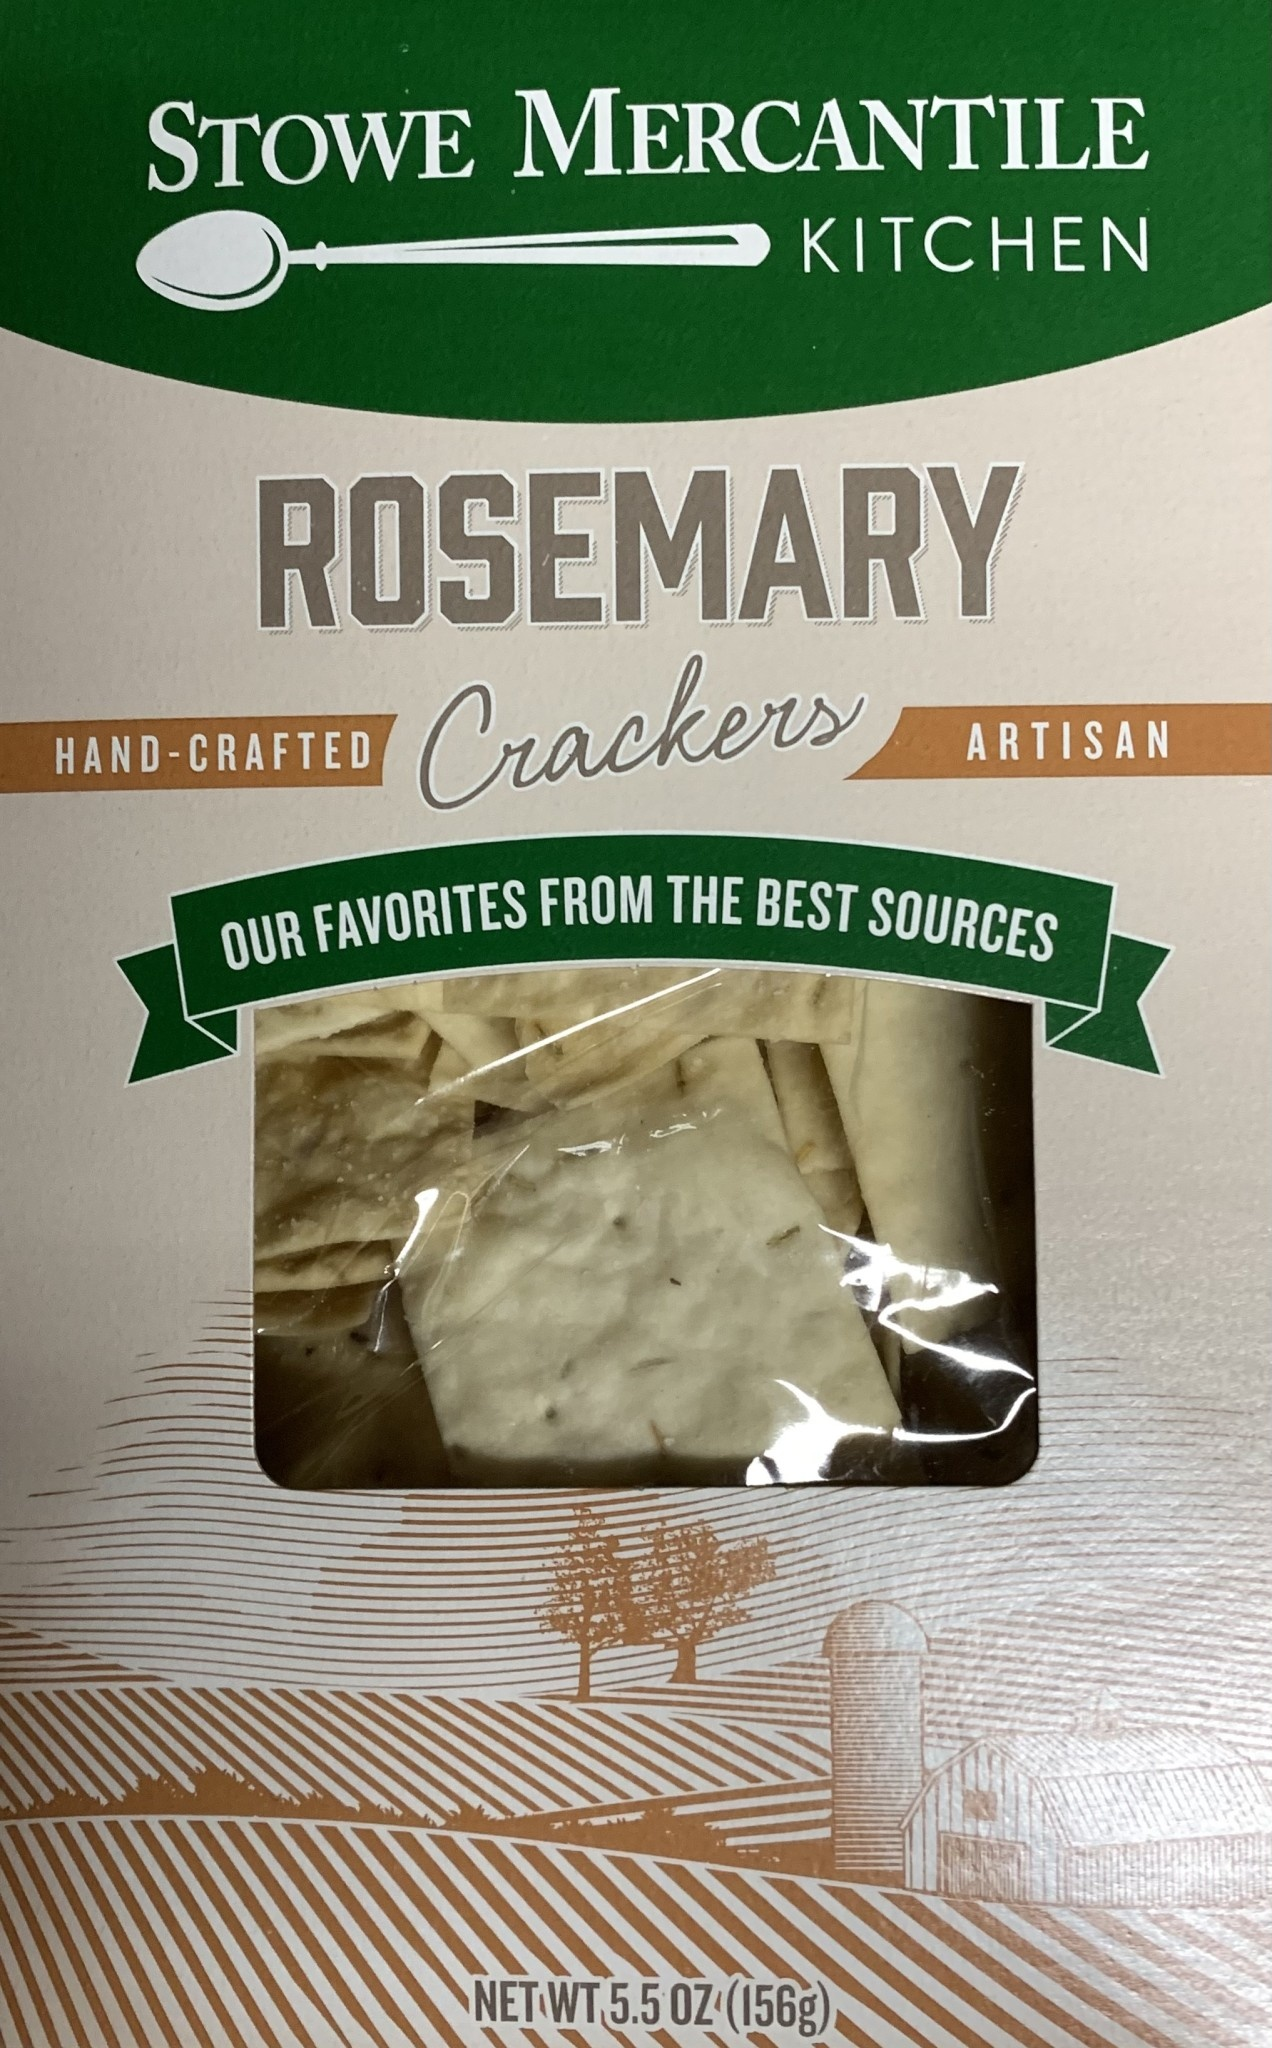 Stowe Mercantile Kitchen Crackers - Rosemary